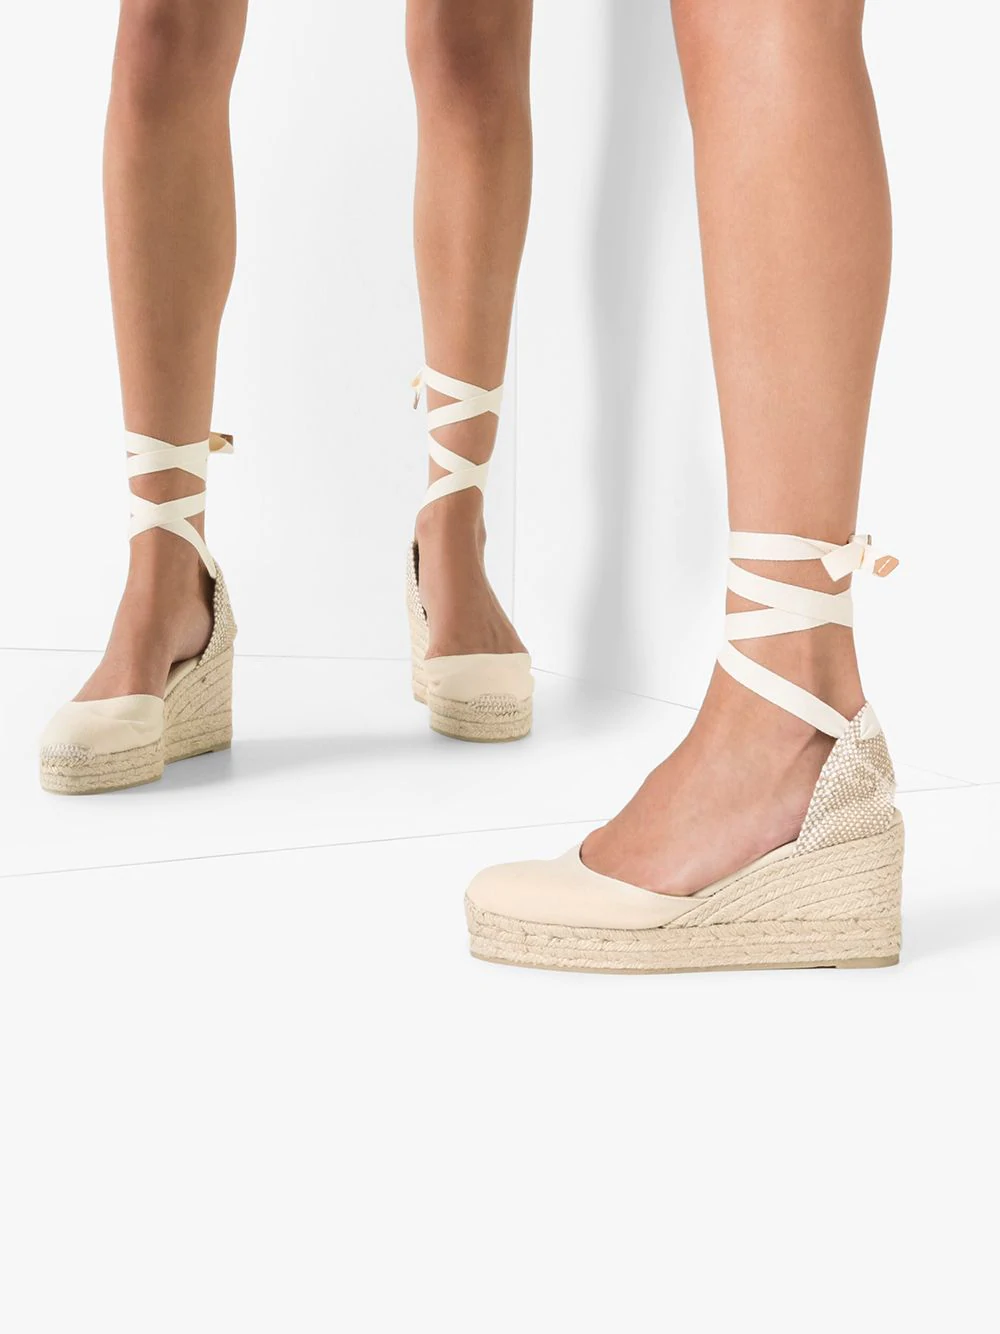 Pin by on shoes   Summer shoes, Shoes, Aesthetic shoes